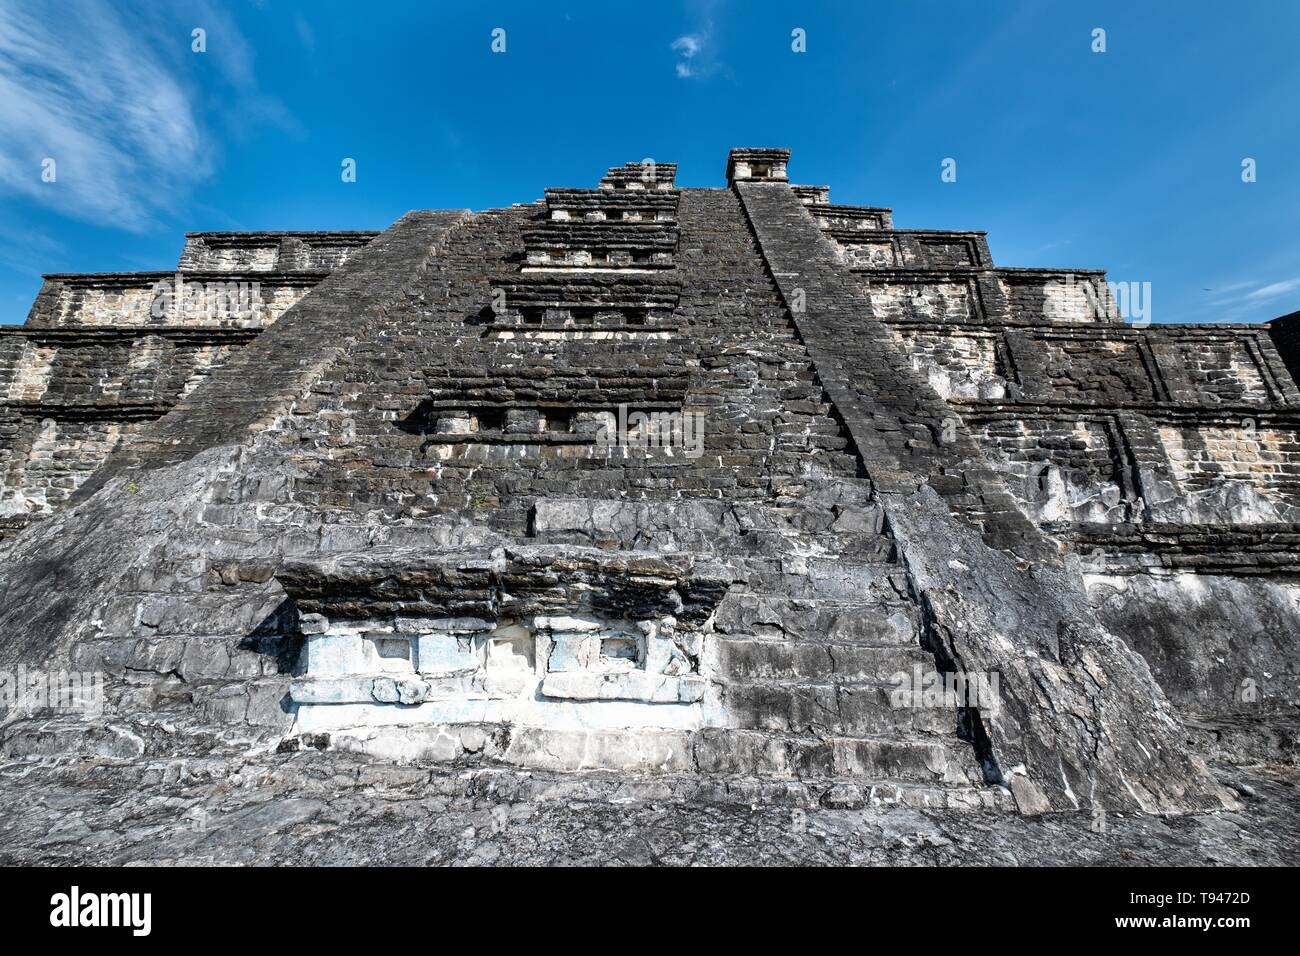 Mesoamerica Blue Temple Pyramid at the pre-Columbian archeological complex of El Tajin in Tajin, Veracruz, Mexico. El Tajín flourished from 600 to 1200 CE and during this time numerous temples, palaces, ballcourts, and pyramids were built by the Totonac people and is one of the largest and most important cities of the Classic era of Mesoamerica. - Stock Image